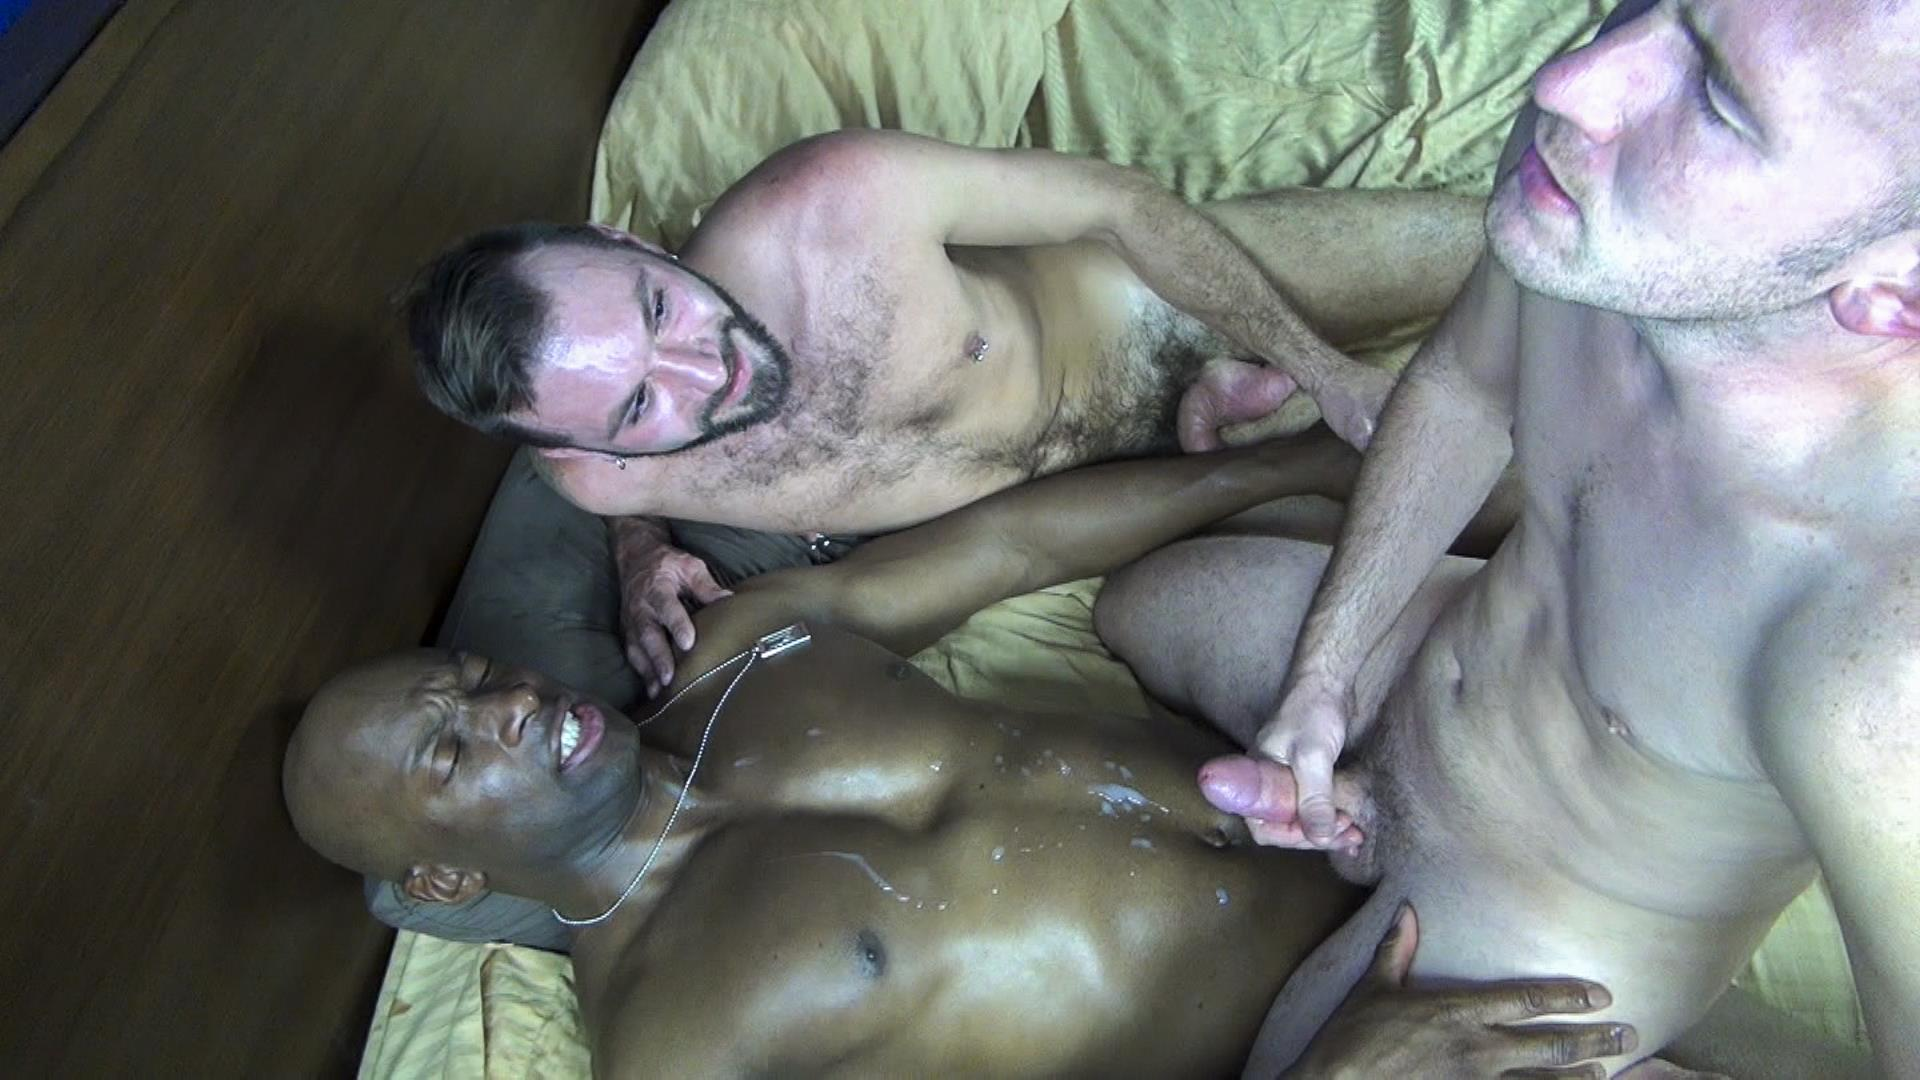 Raw Fuck Club Ethan Palmer and Champ Robinson and Trit Tyler Bareback Interrical Amateur Gay Porn 06 Champ Robinson Shares His Big Black Dick With 2 White Guys